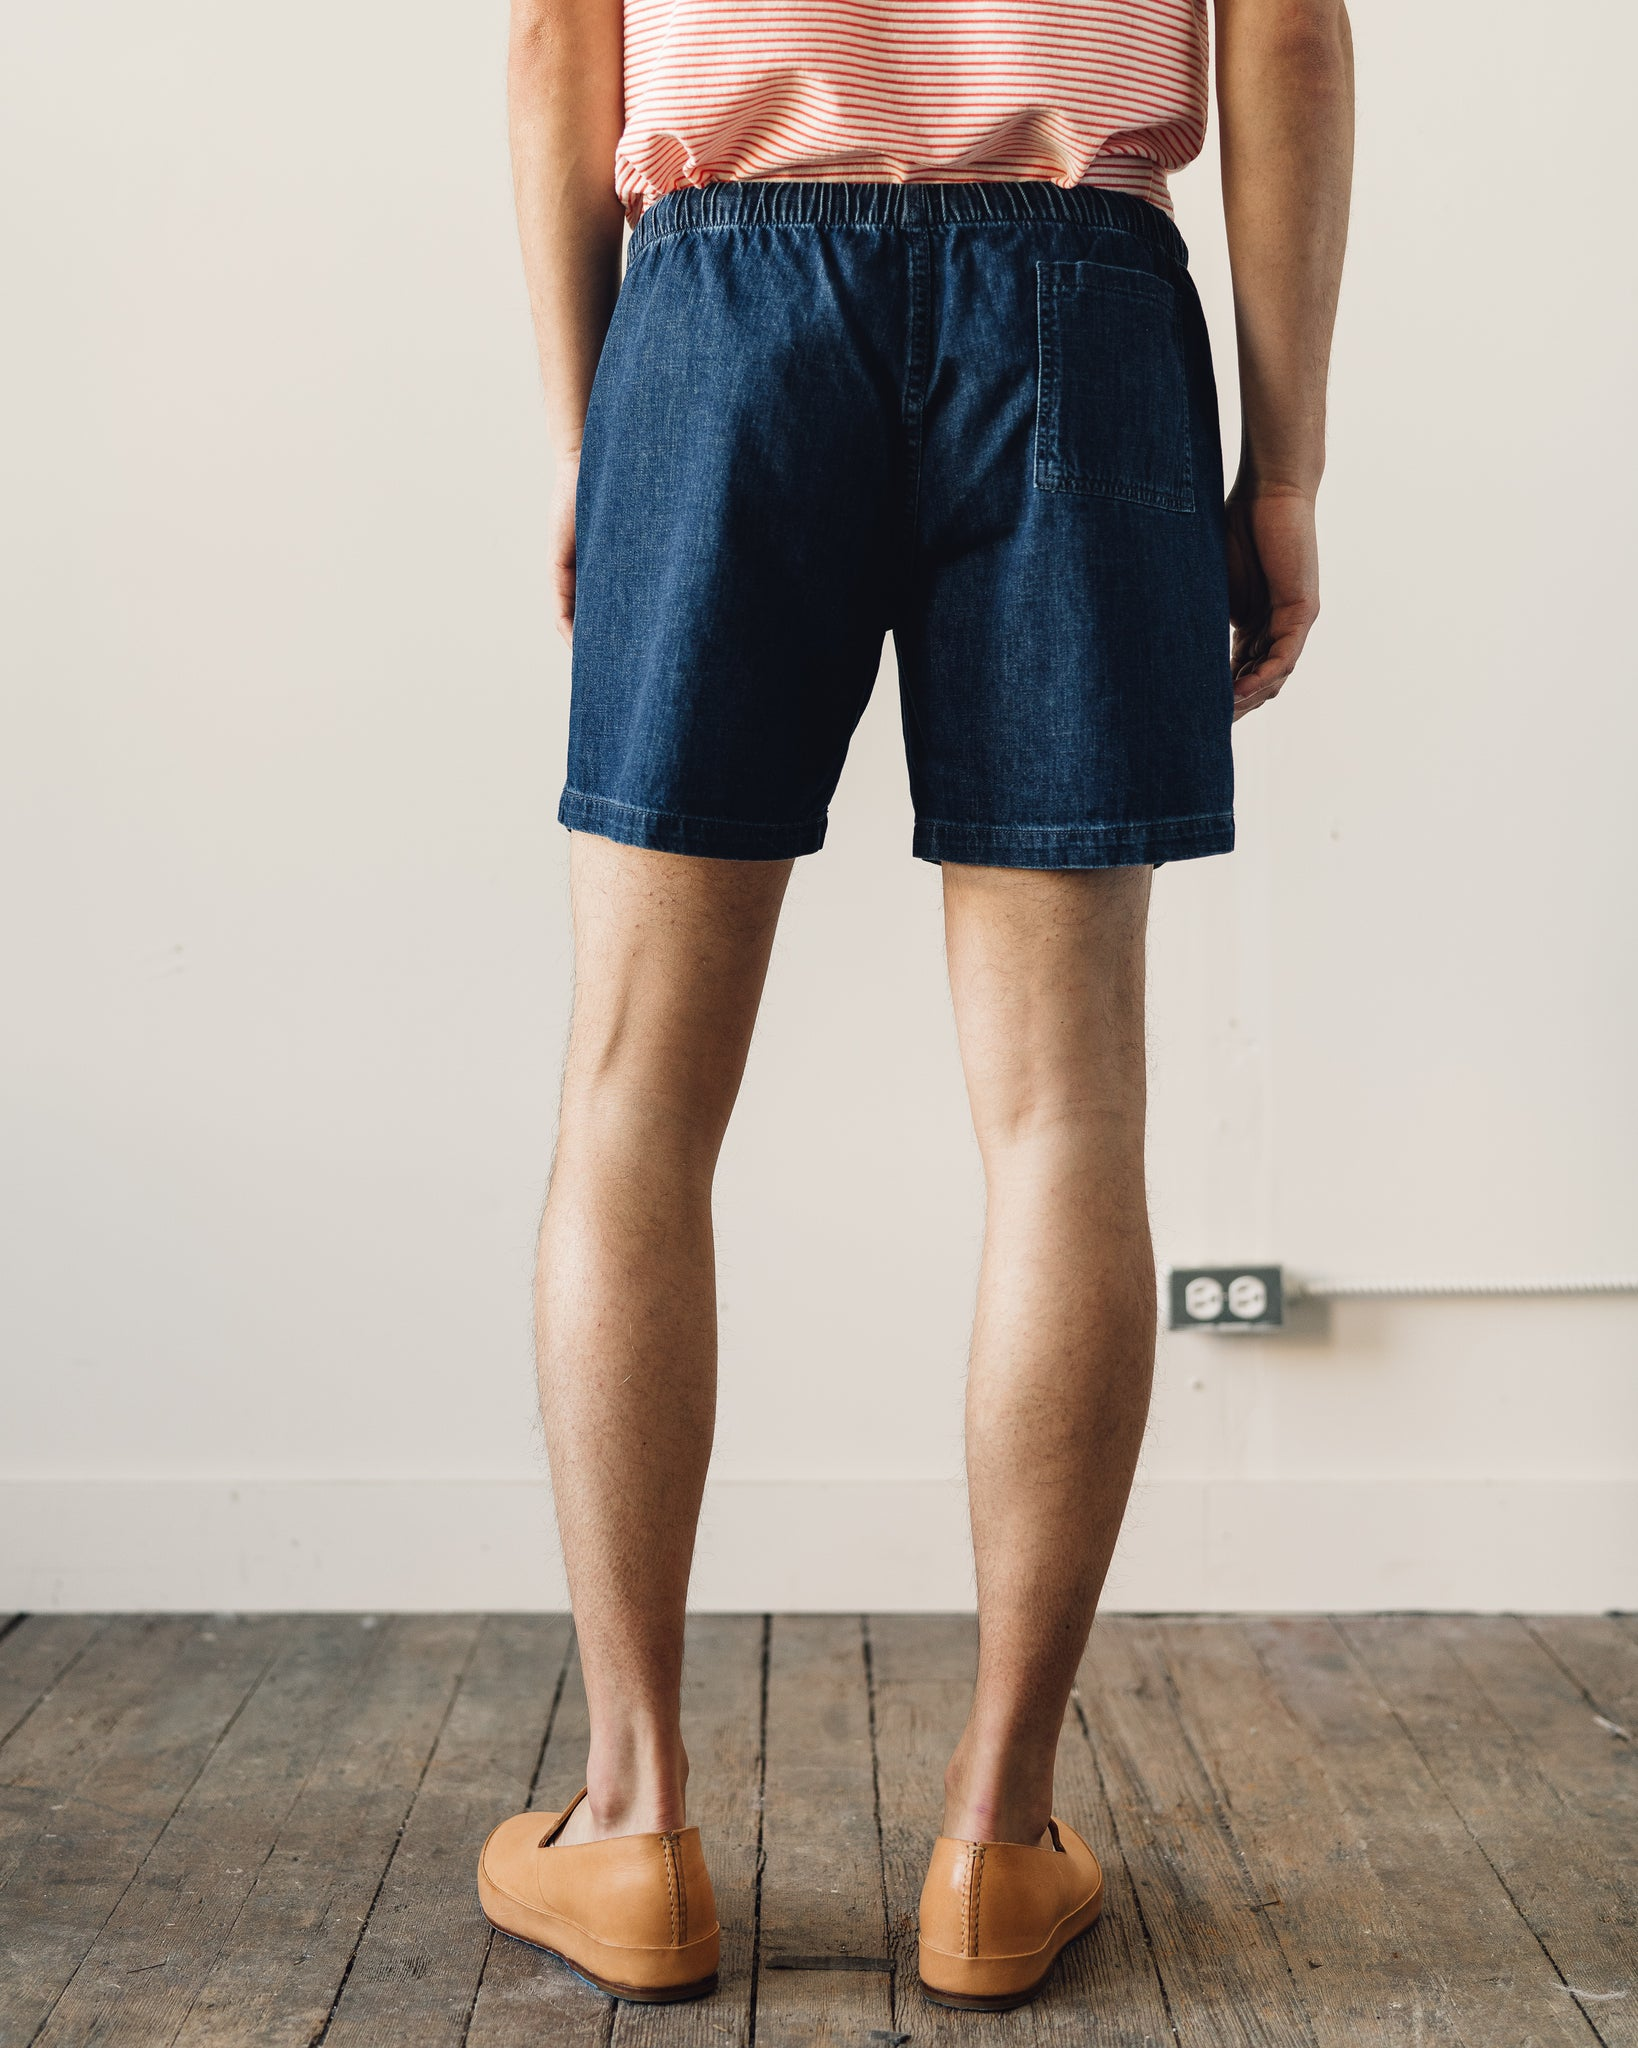 La Paz Formigal Beach Short, Denim